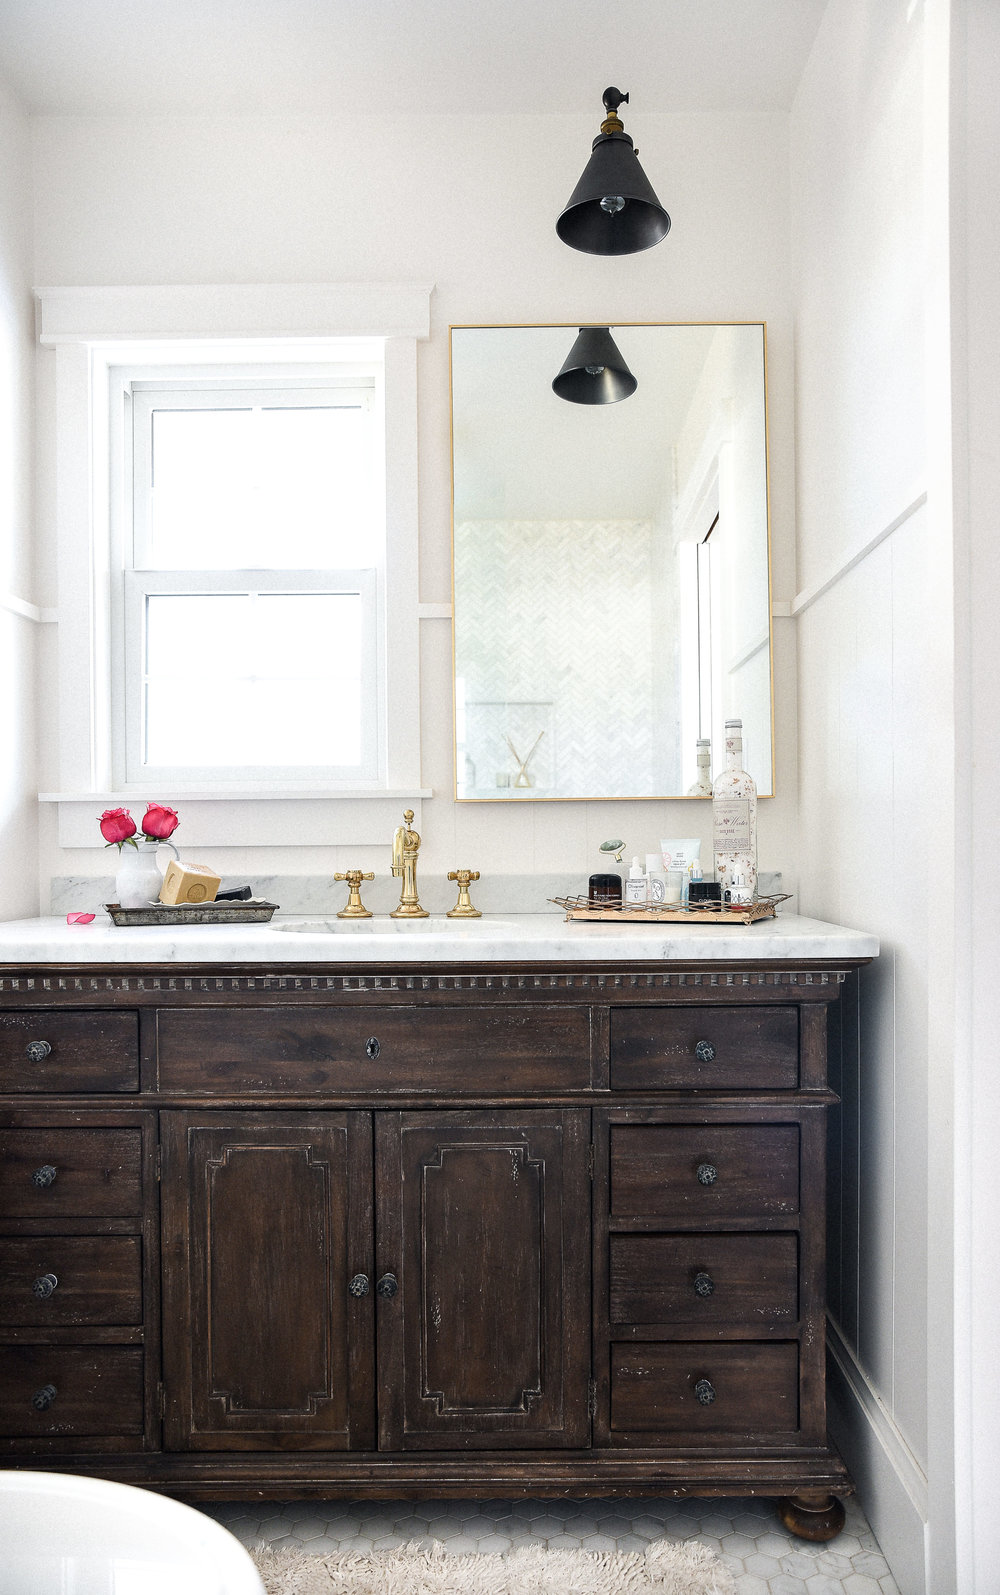 Marble & brass bathroom with vintage dark wood vanity remodel